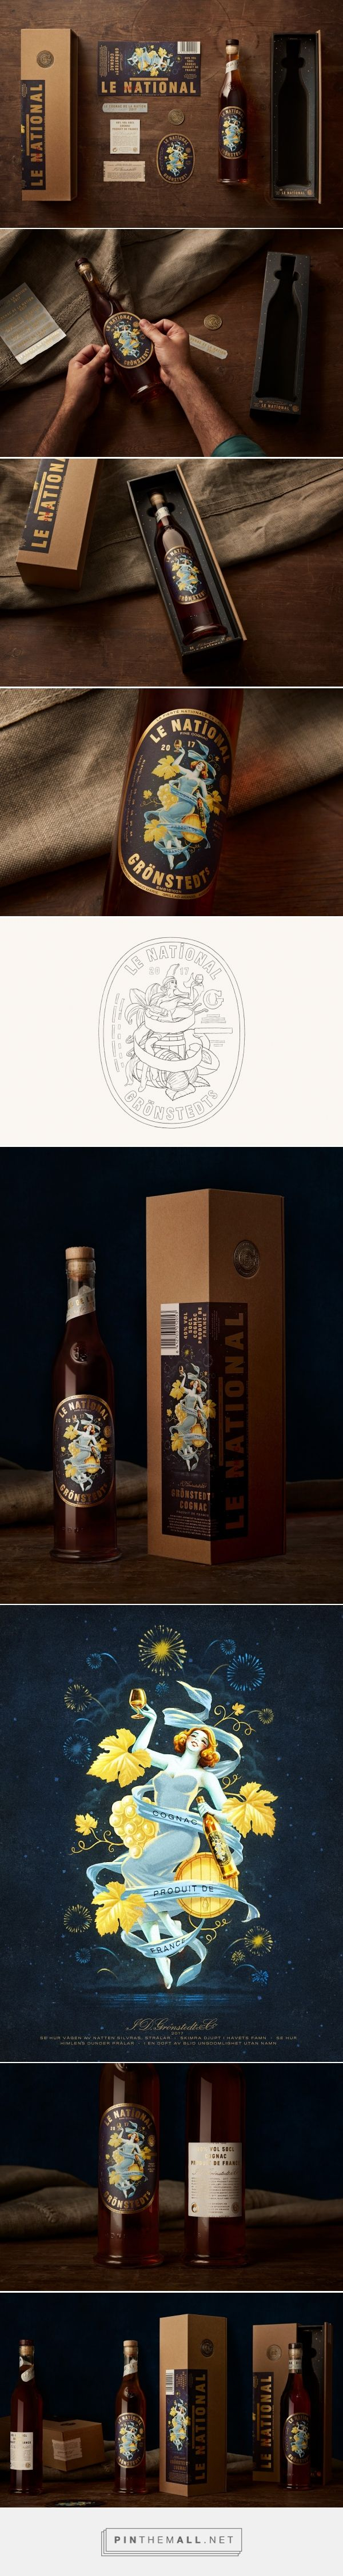 Grönstedts Le National '17 limited edition cognac packaging design by NINE Stockholm - http://www.packagingoftheworld.com/2018/02/gronstedts-le-national-17.html